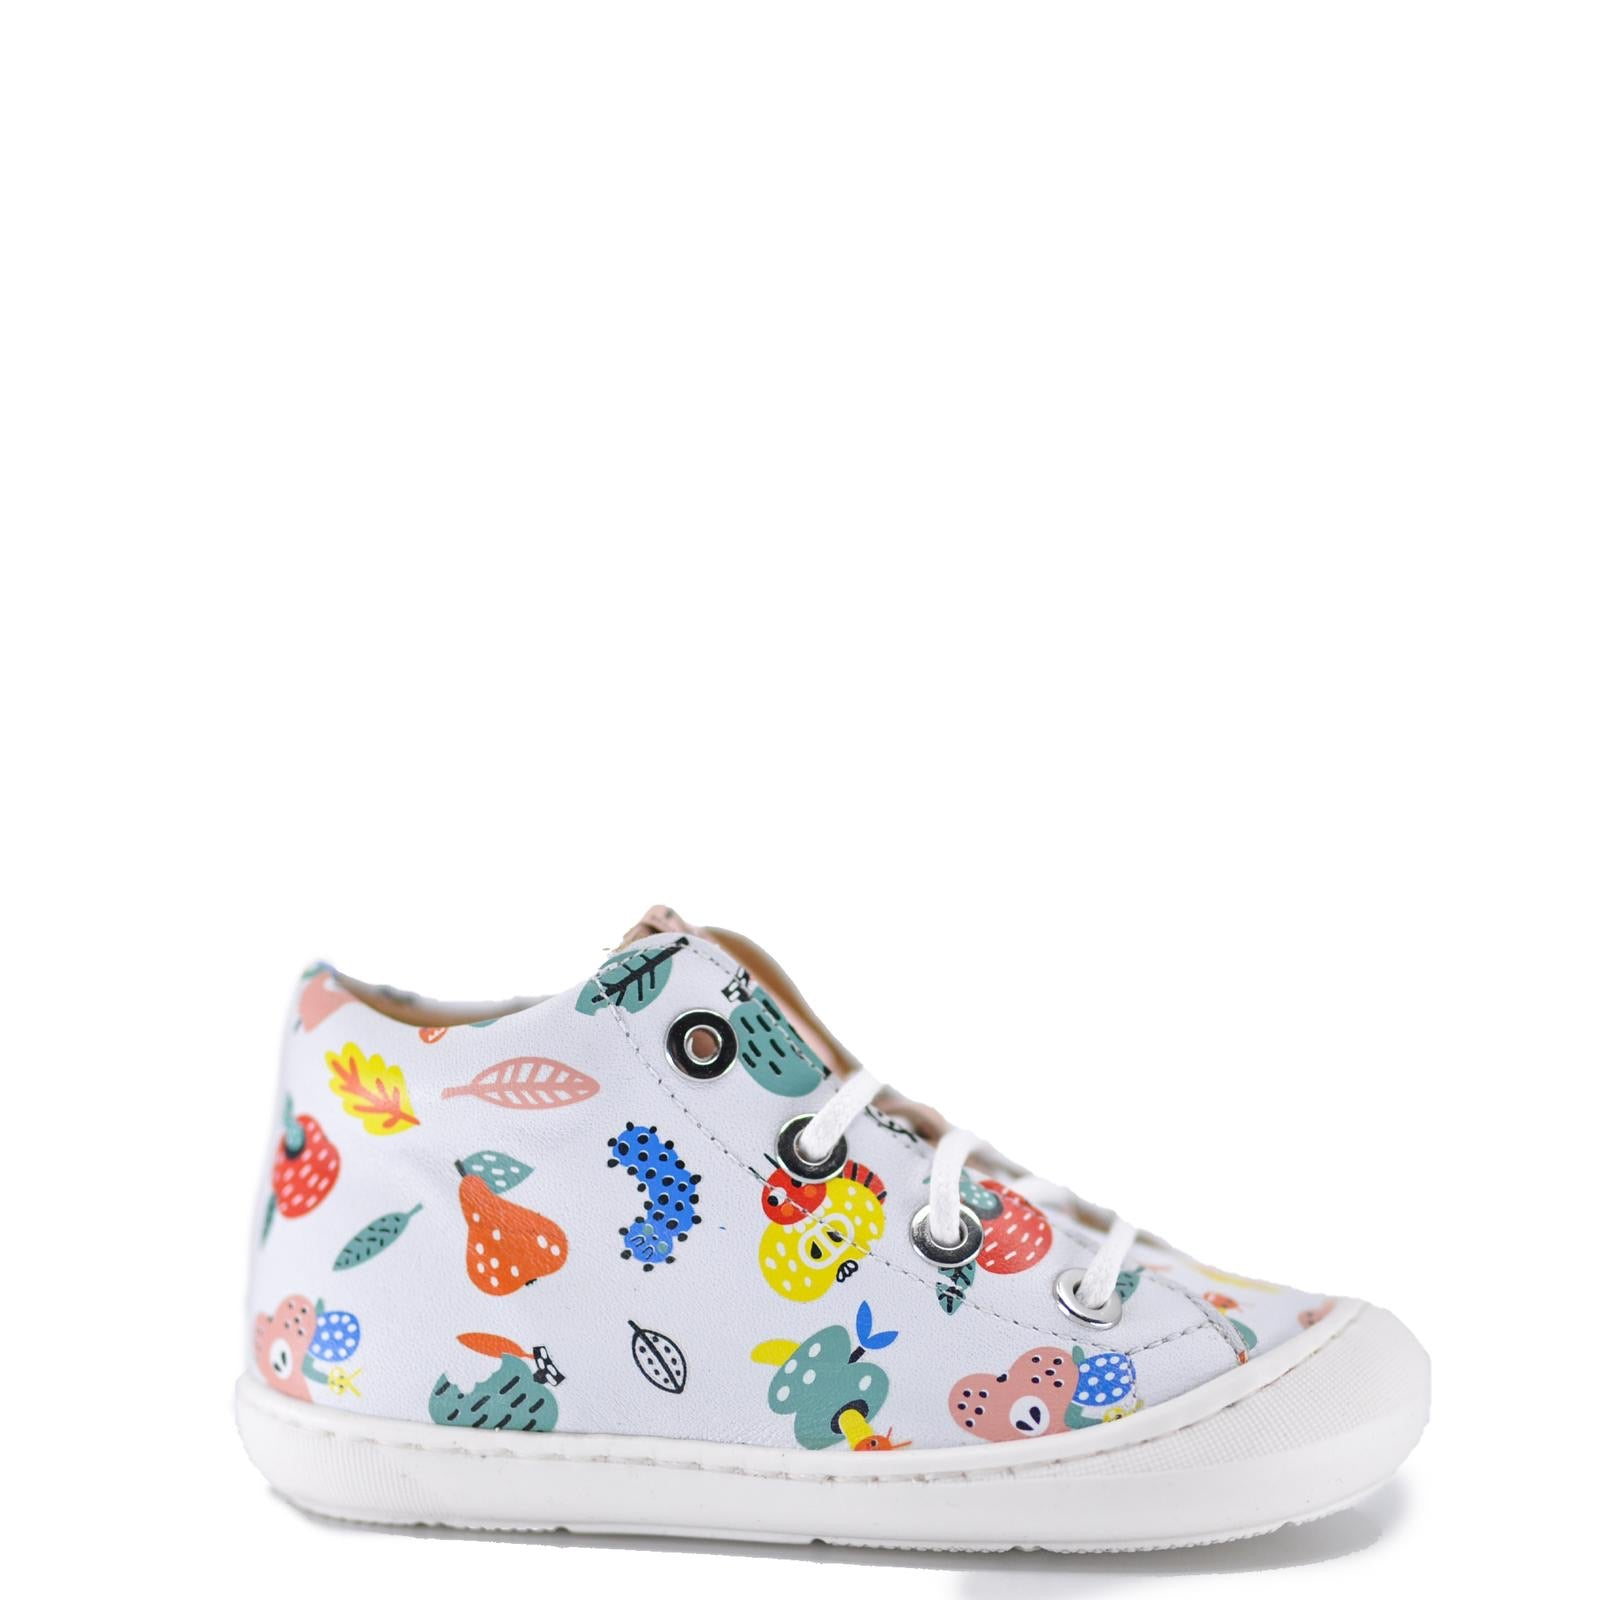 MAA Fruit Print Baby Sneaker-Tassel Children Shoes